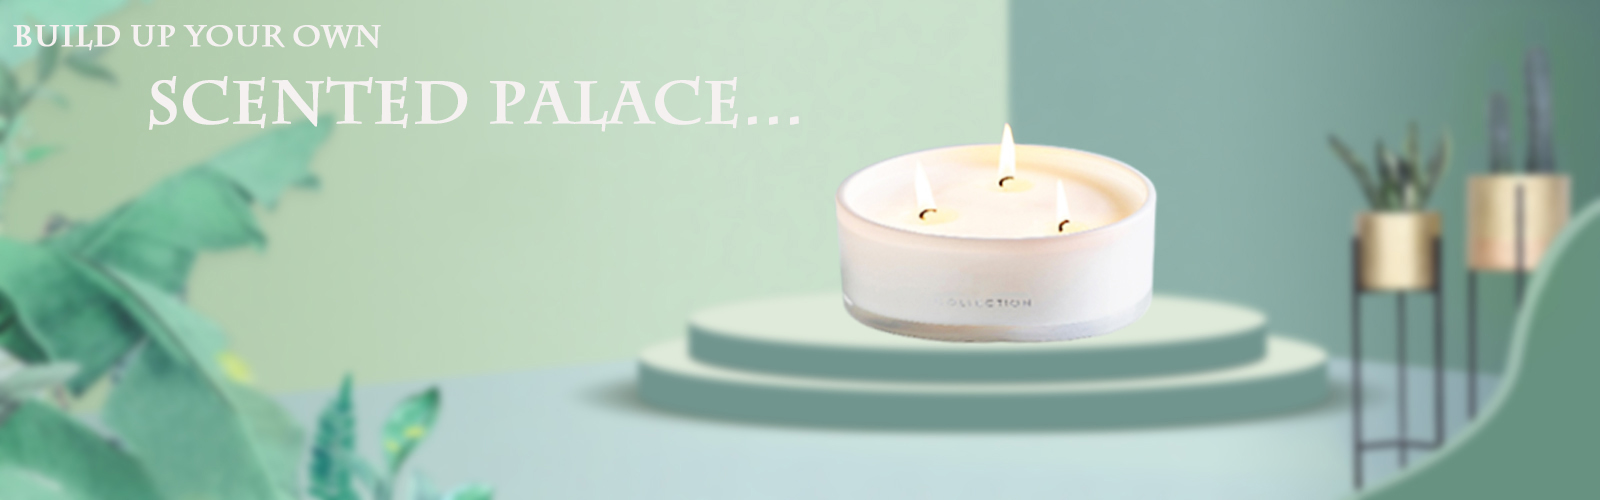 Scented candles manufacturer